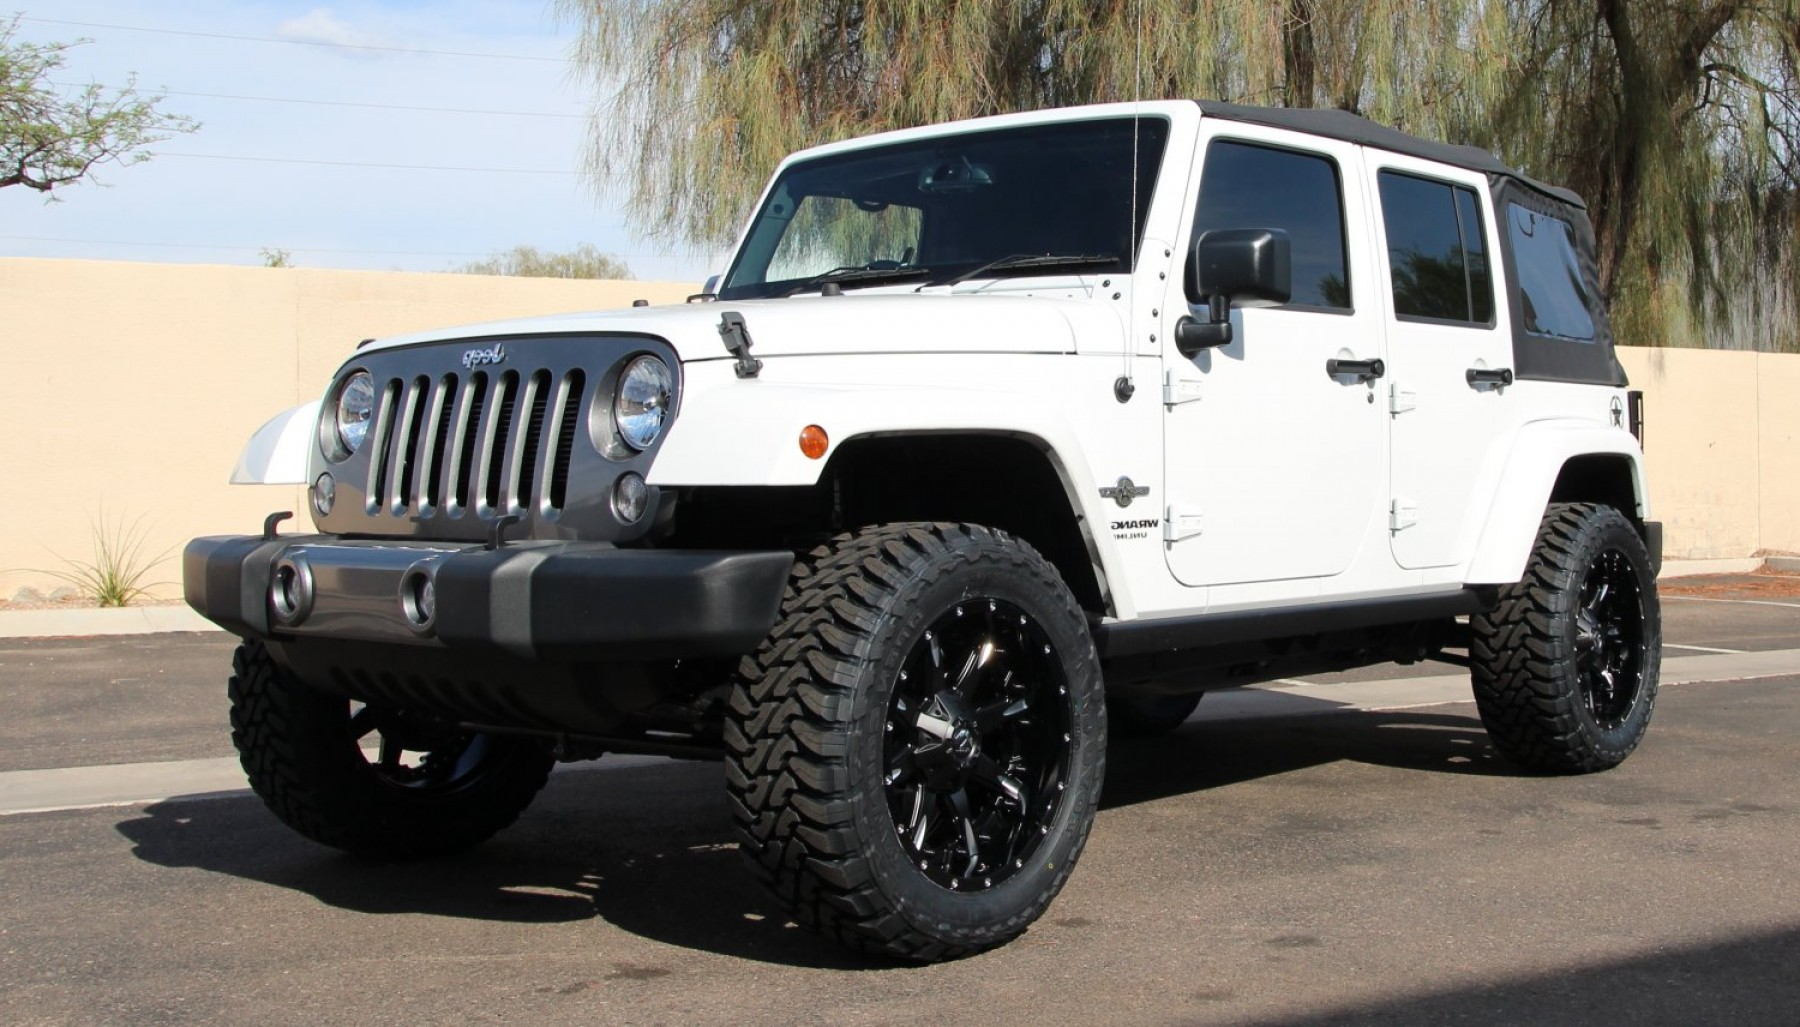 2014 Jeep Wrangler Vector: Fuel Nutz Black Milled Multi Piece On Jeep Wrangler W Specs